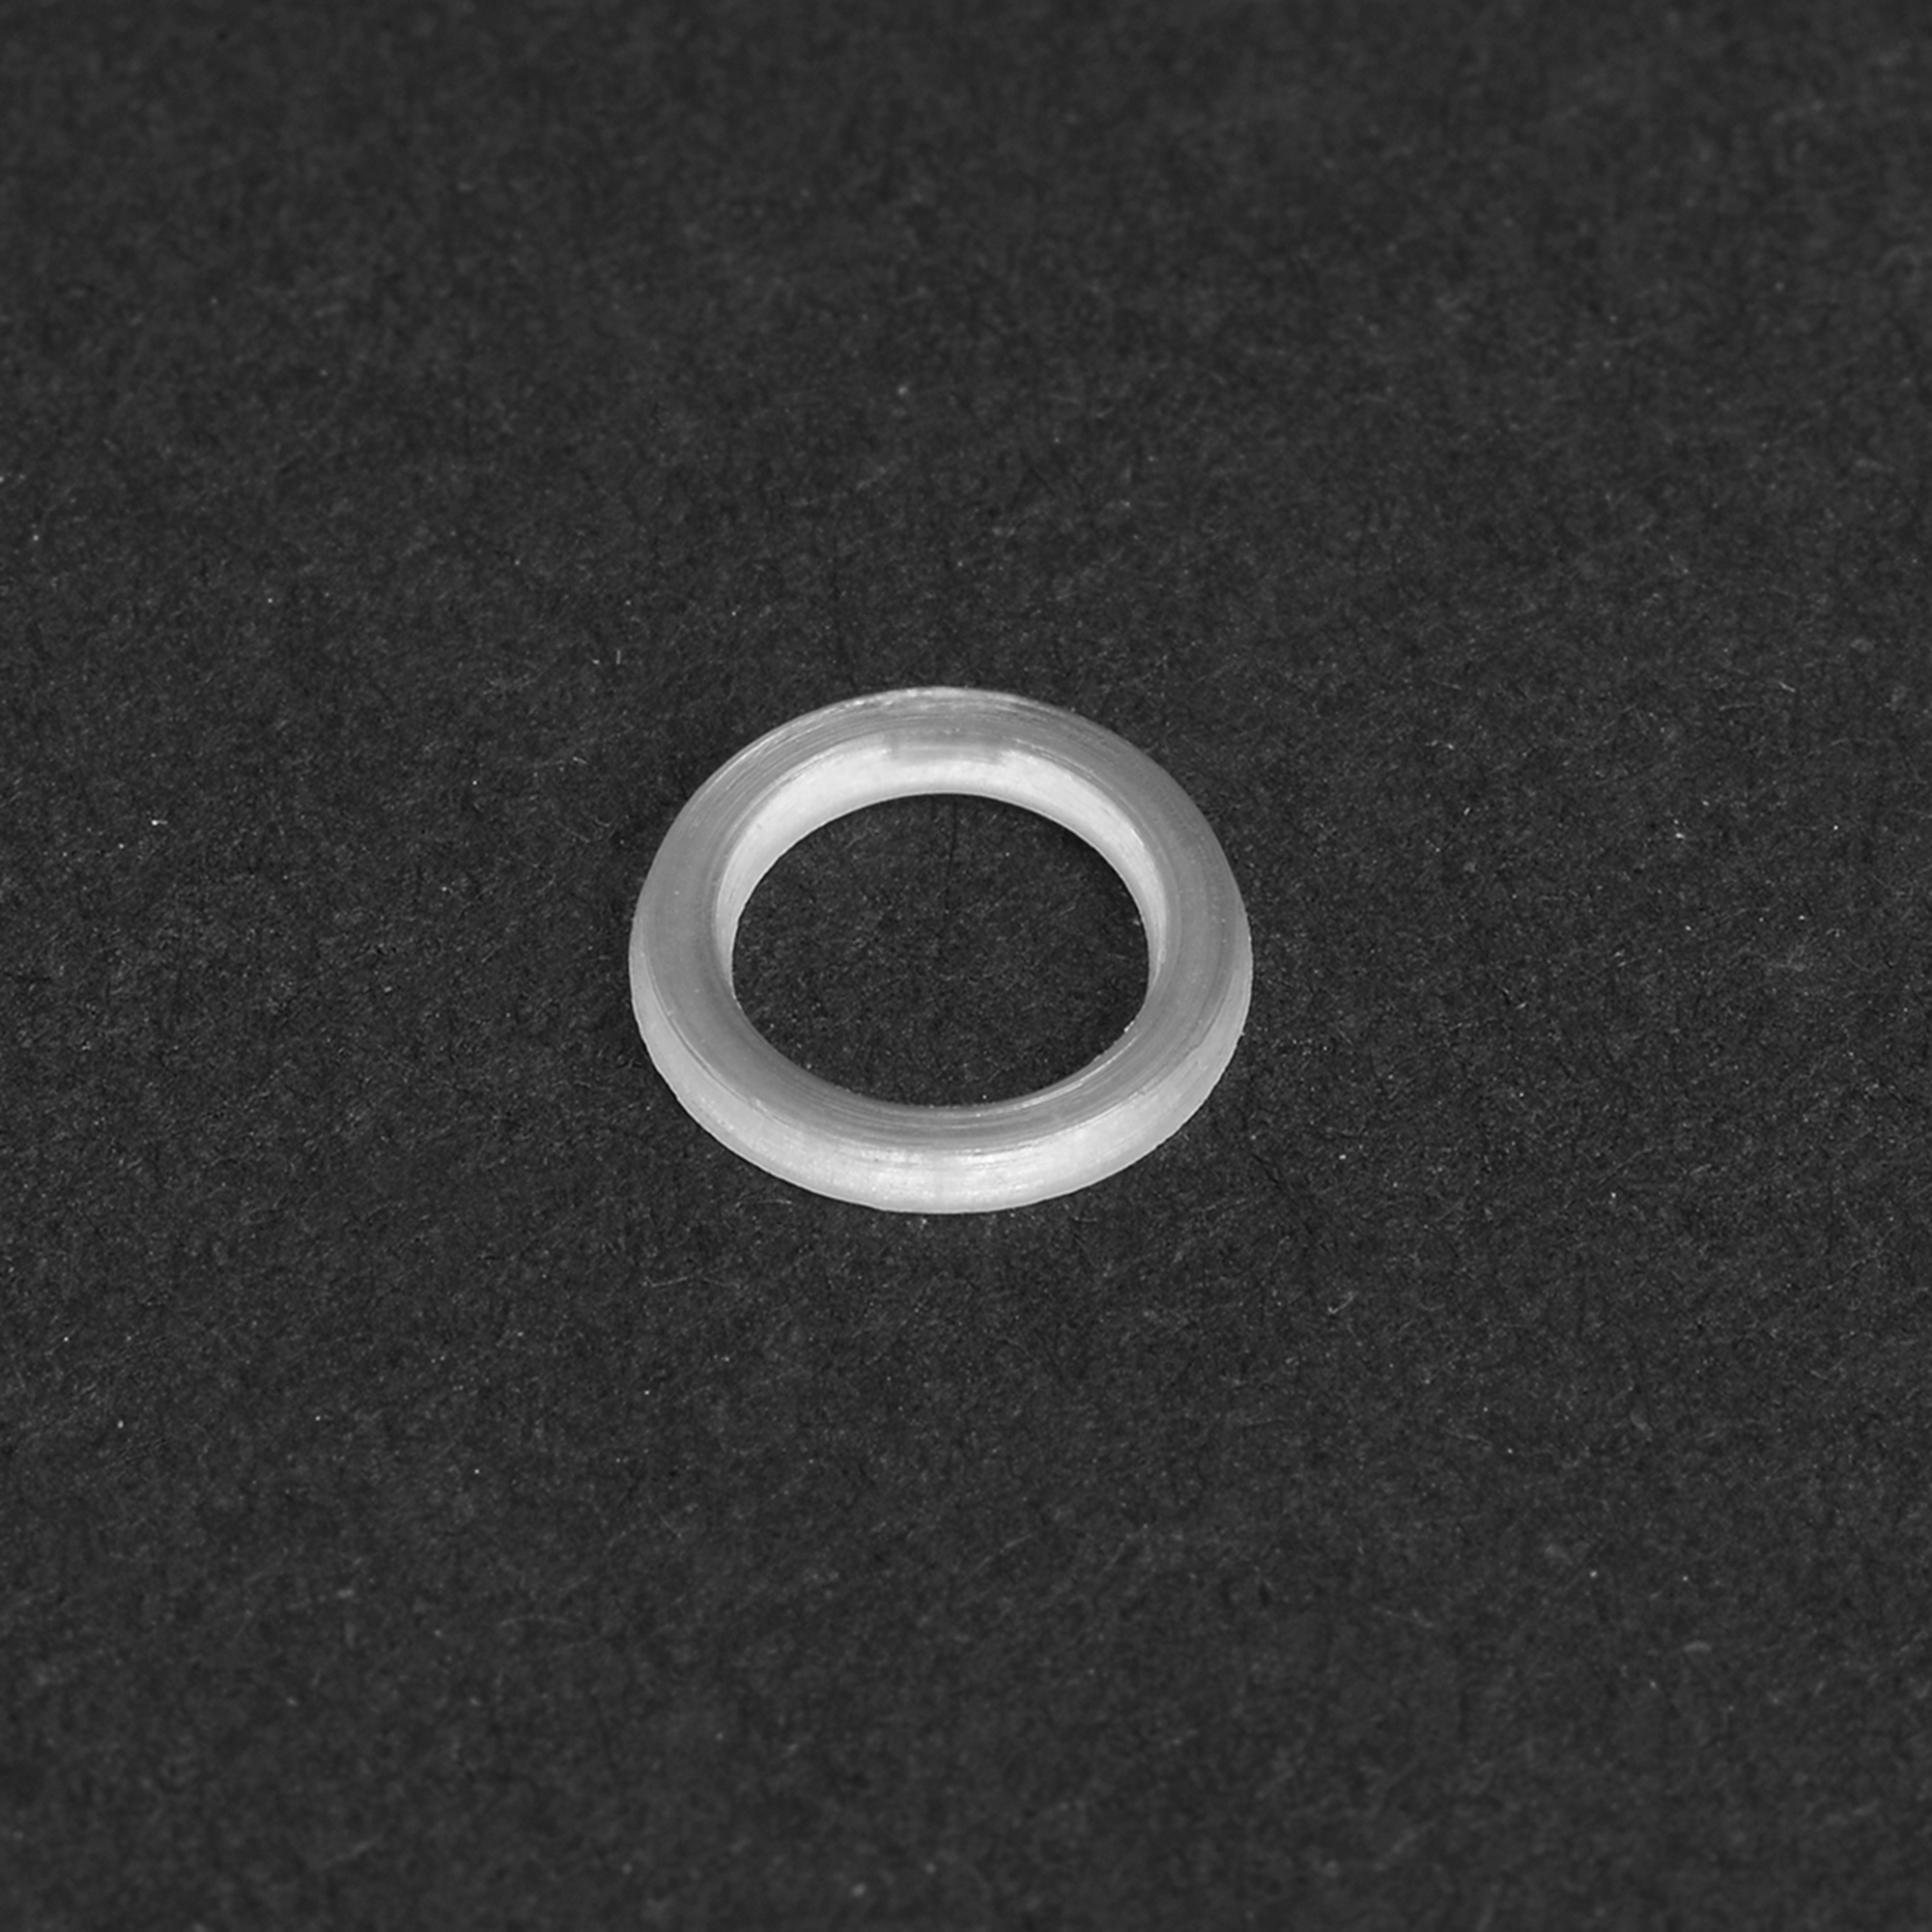 Nylon Flat Washers for M5 Screw Bolt 7.5mm OD 1mm Thick Clear 100PCS - image 2 of 4